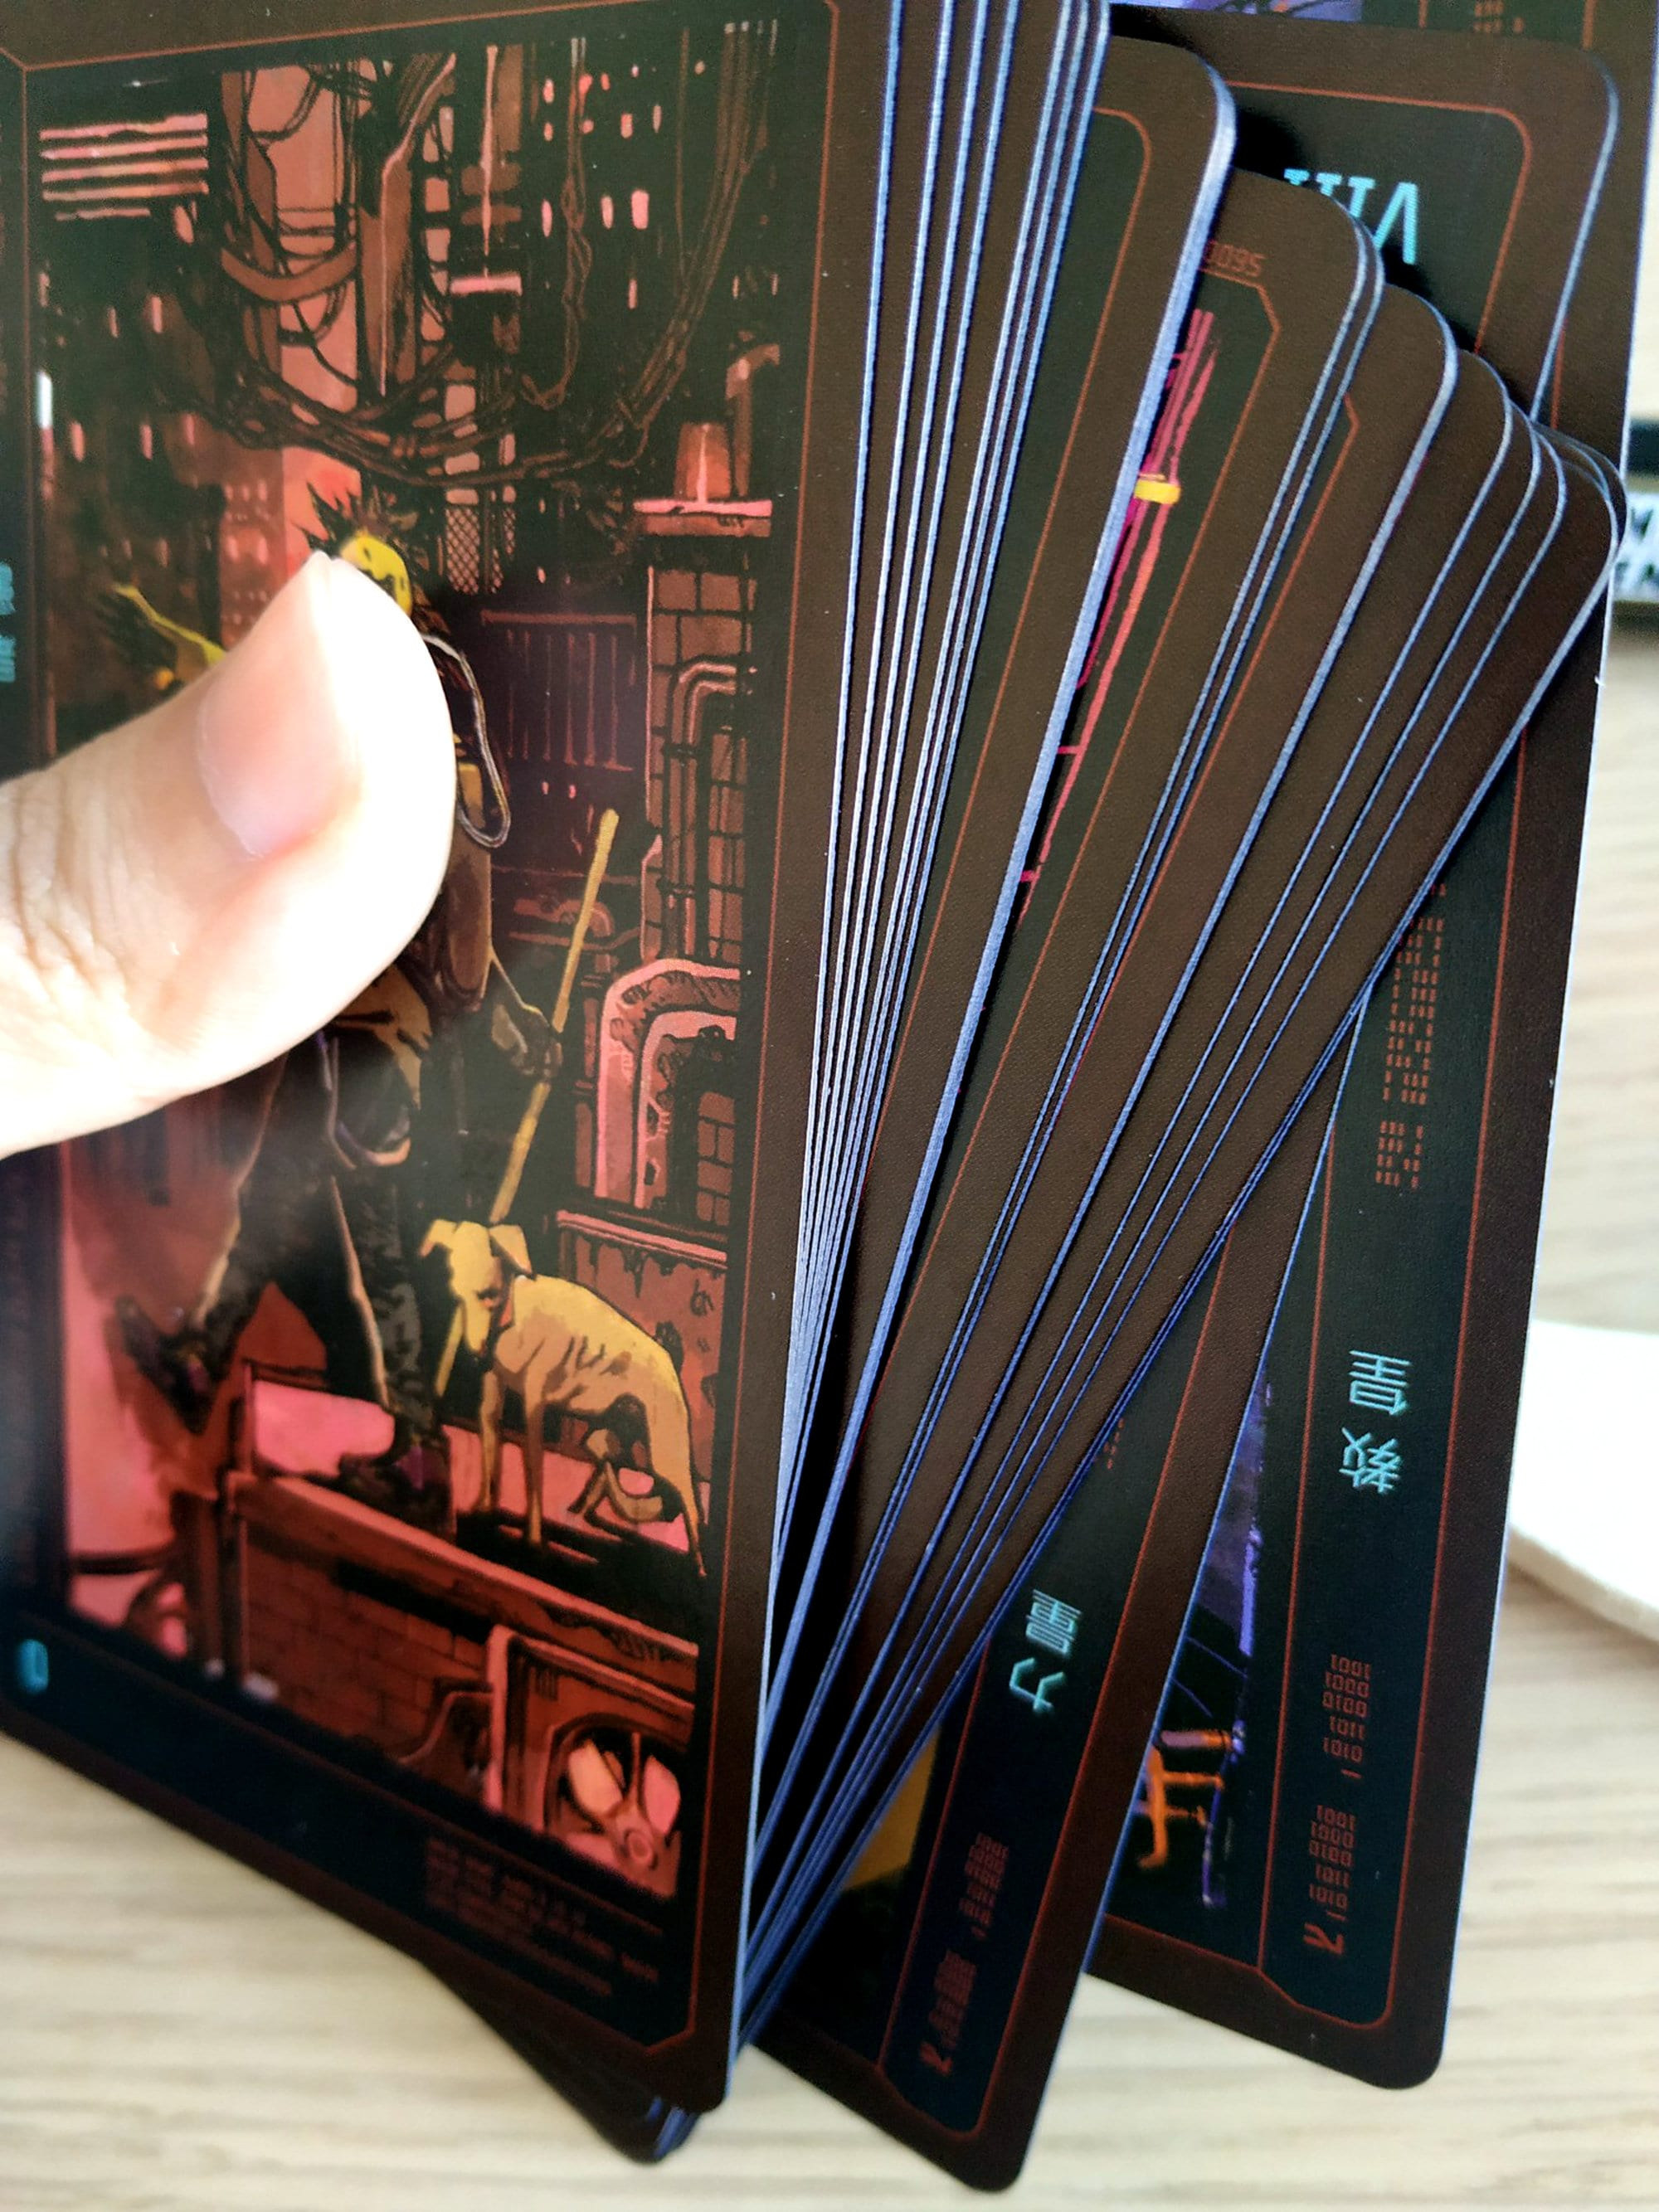 Cyberpunk 2077 tarot cards 22 deck cards game collection | Etsy